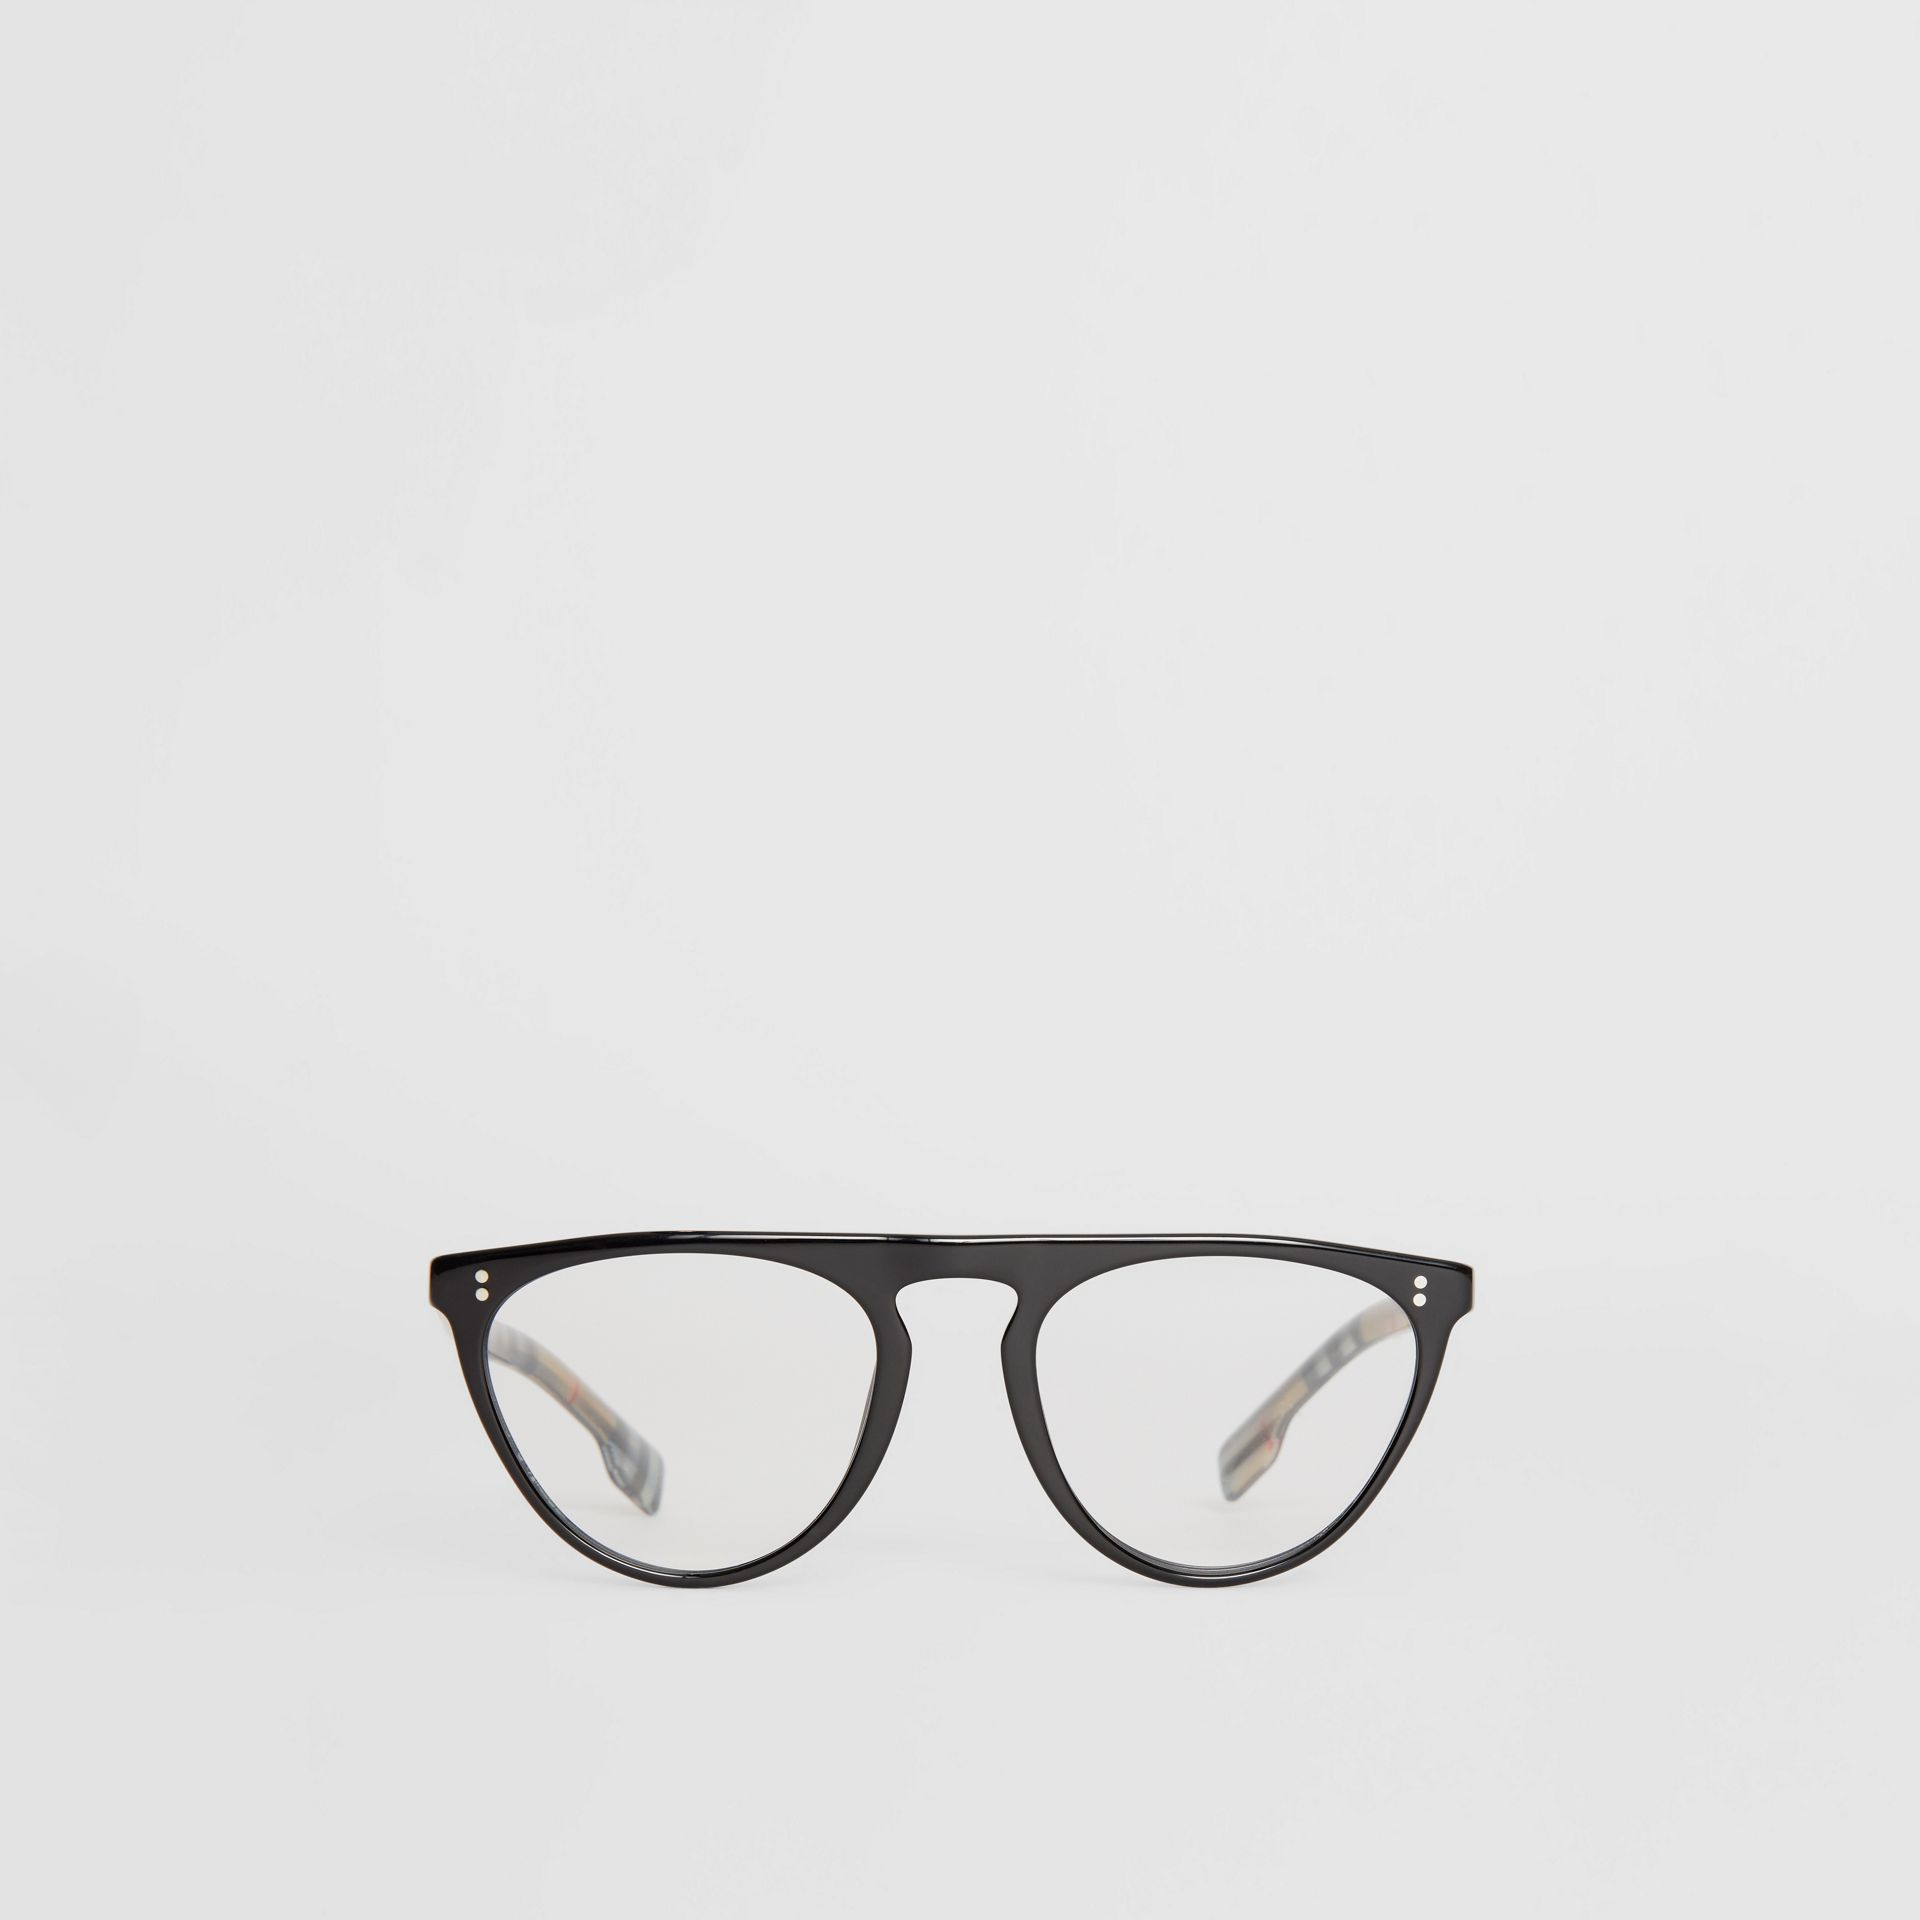 Keyhole D-shaped Optical Frames in Black - Men | Burberry Singapore - gallery image 0